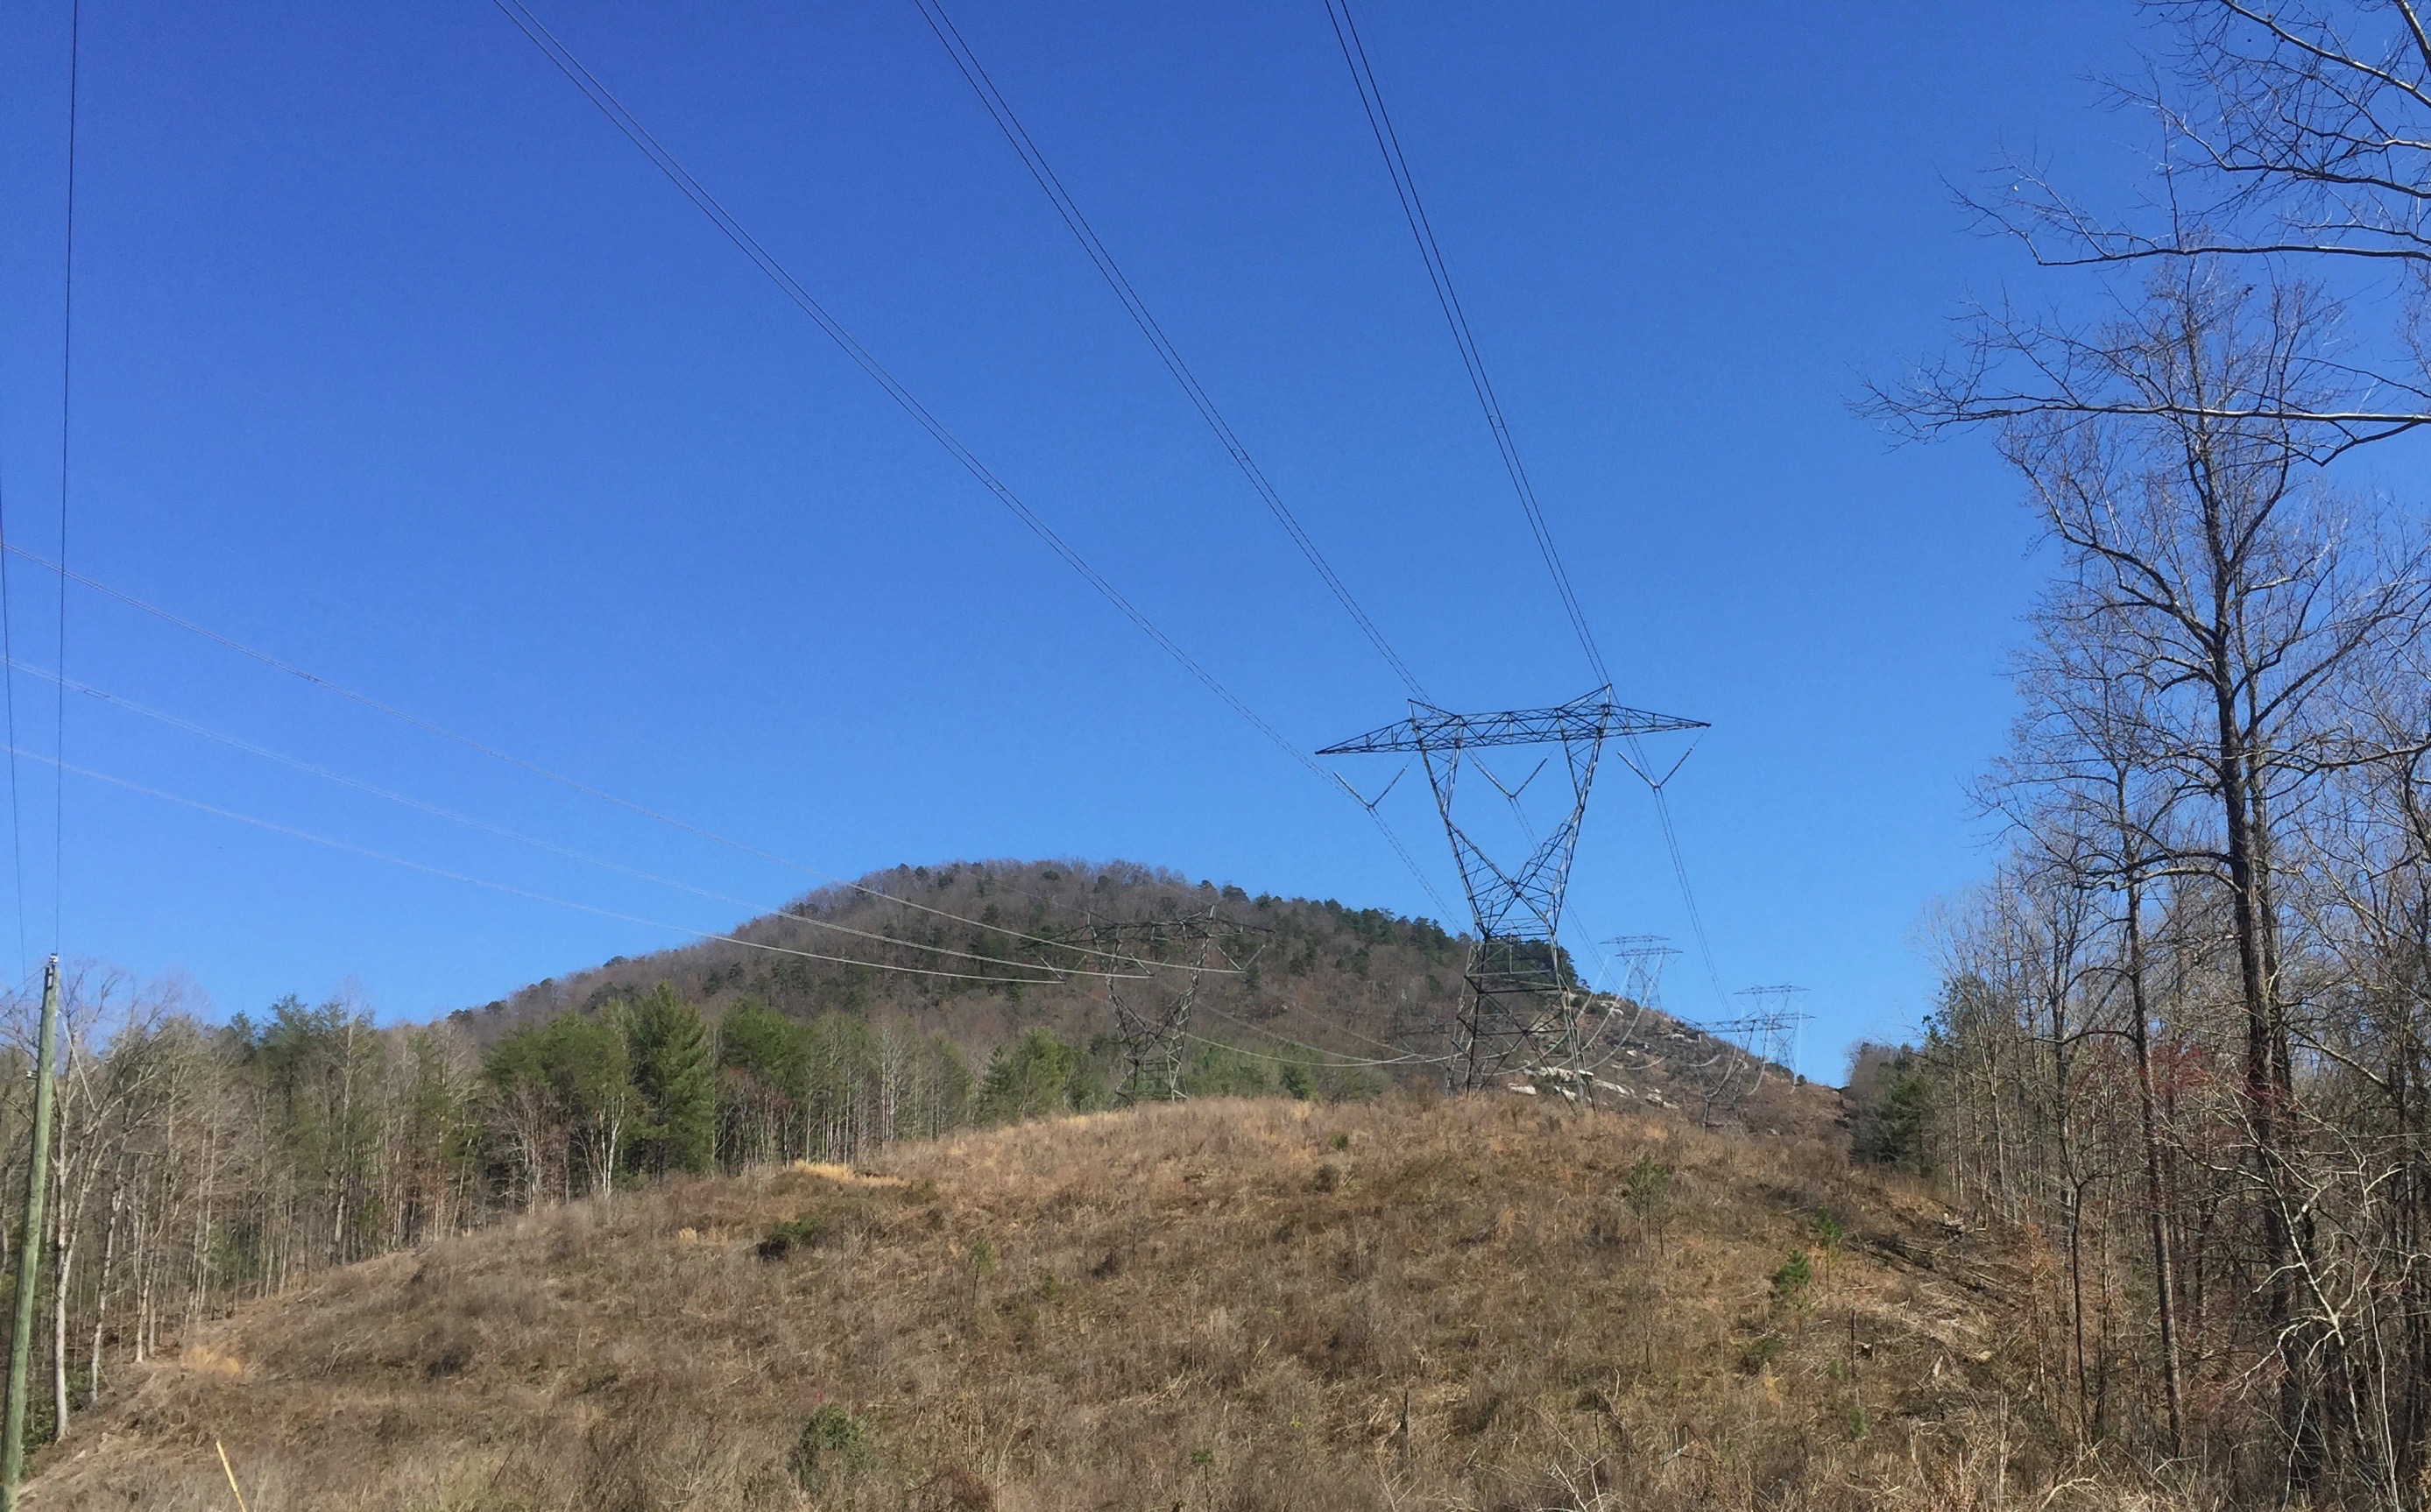 Duke Energy transmission lines serving Oconee Nuclear Station in Pickens County